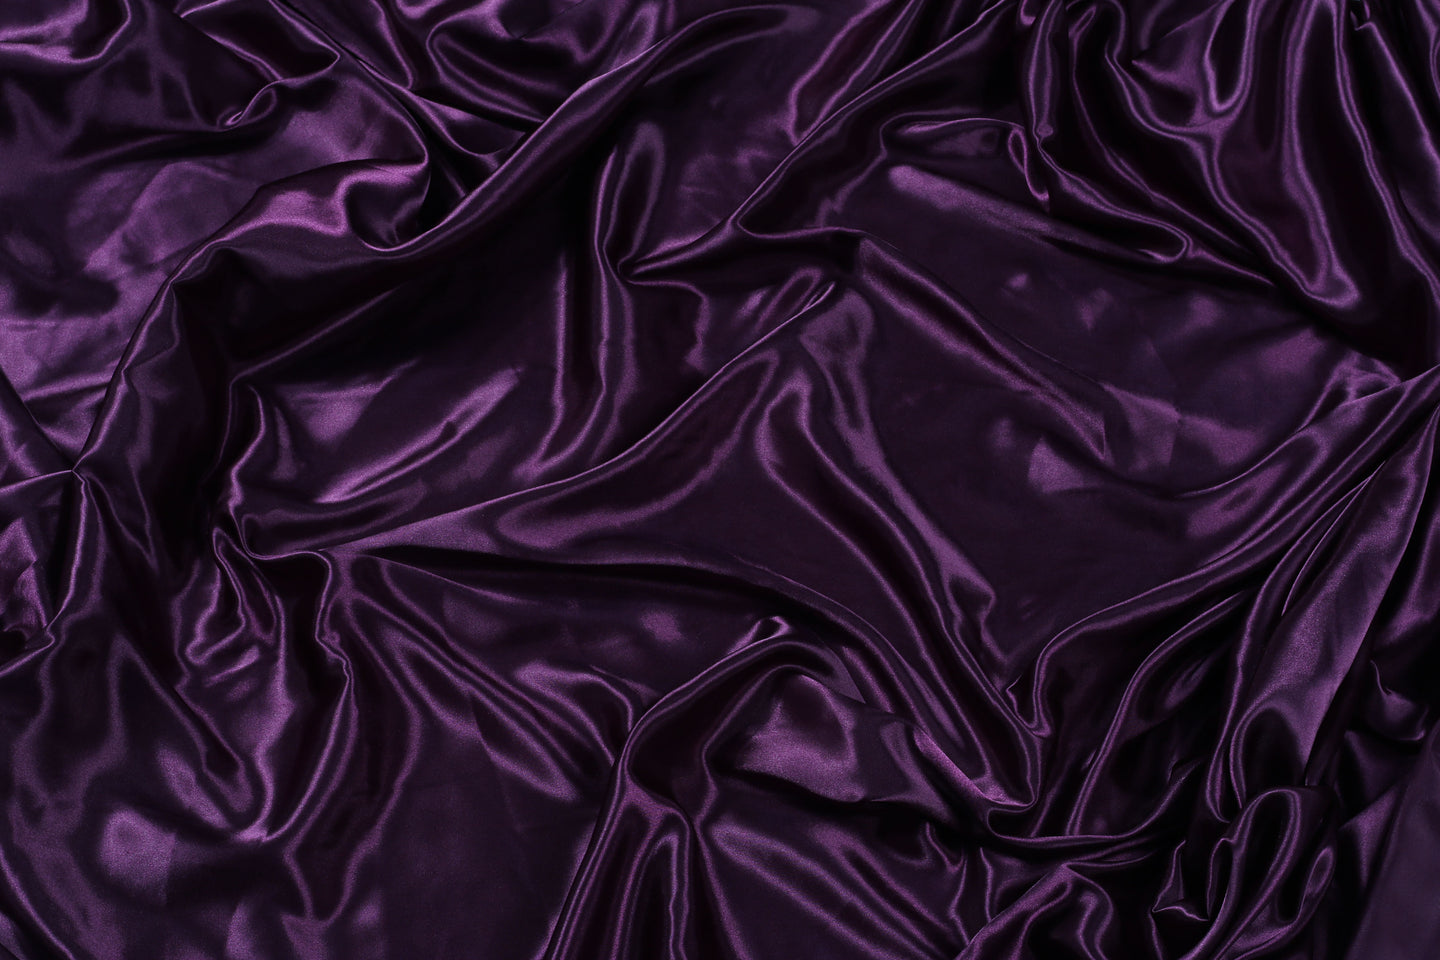 Plain Silk Satin - Eggplant - 5 Yard Piece